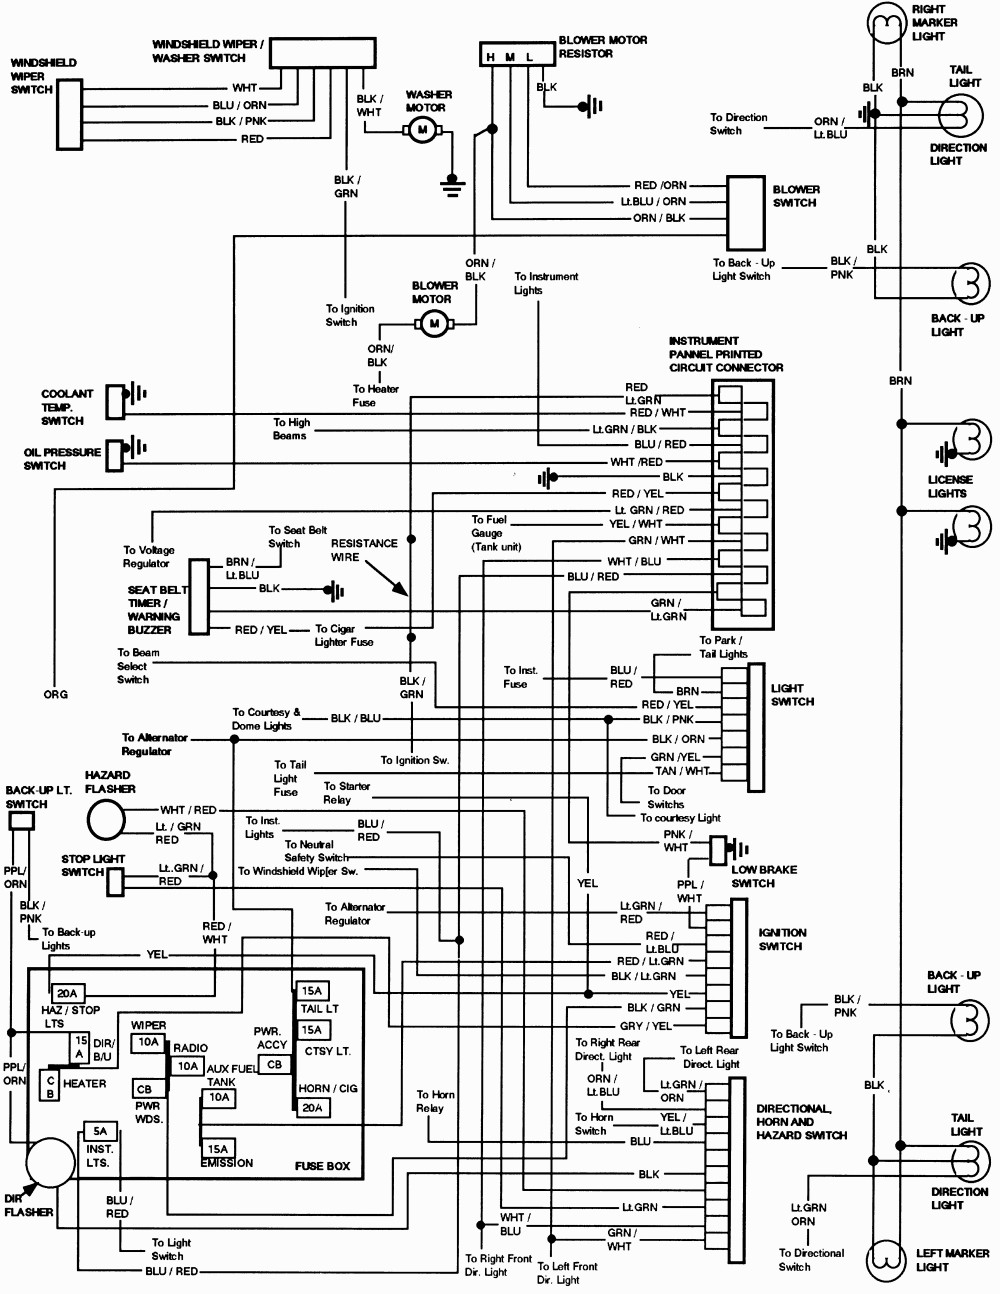 hight resolution of radio wiring diagram 89 mustang electrical wiring library 98 dodge grand caravan wiring diagram 89 mustang